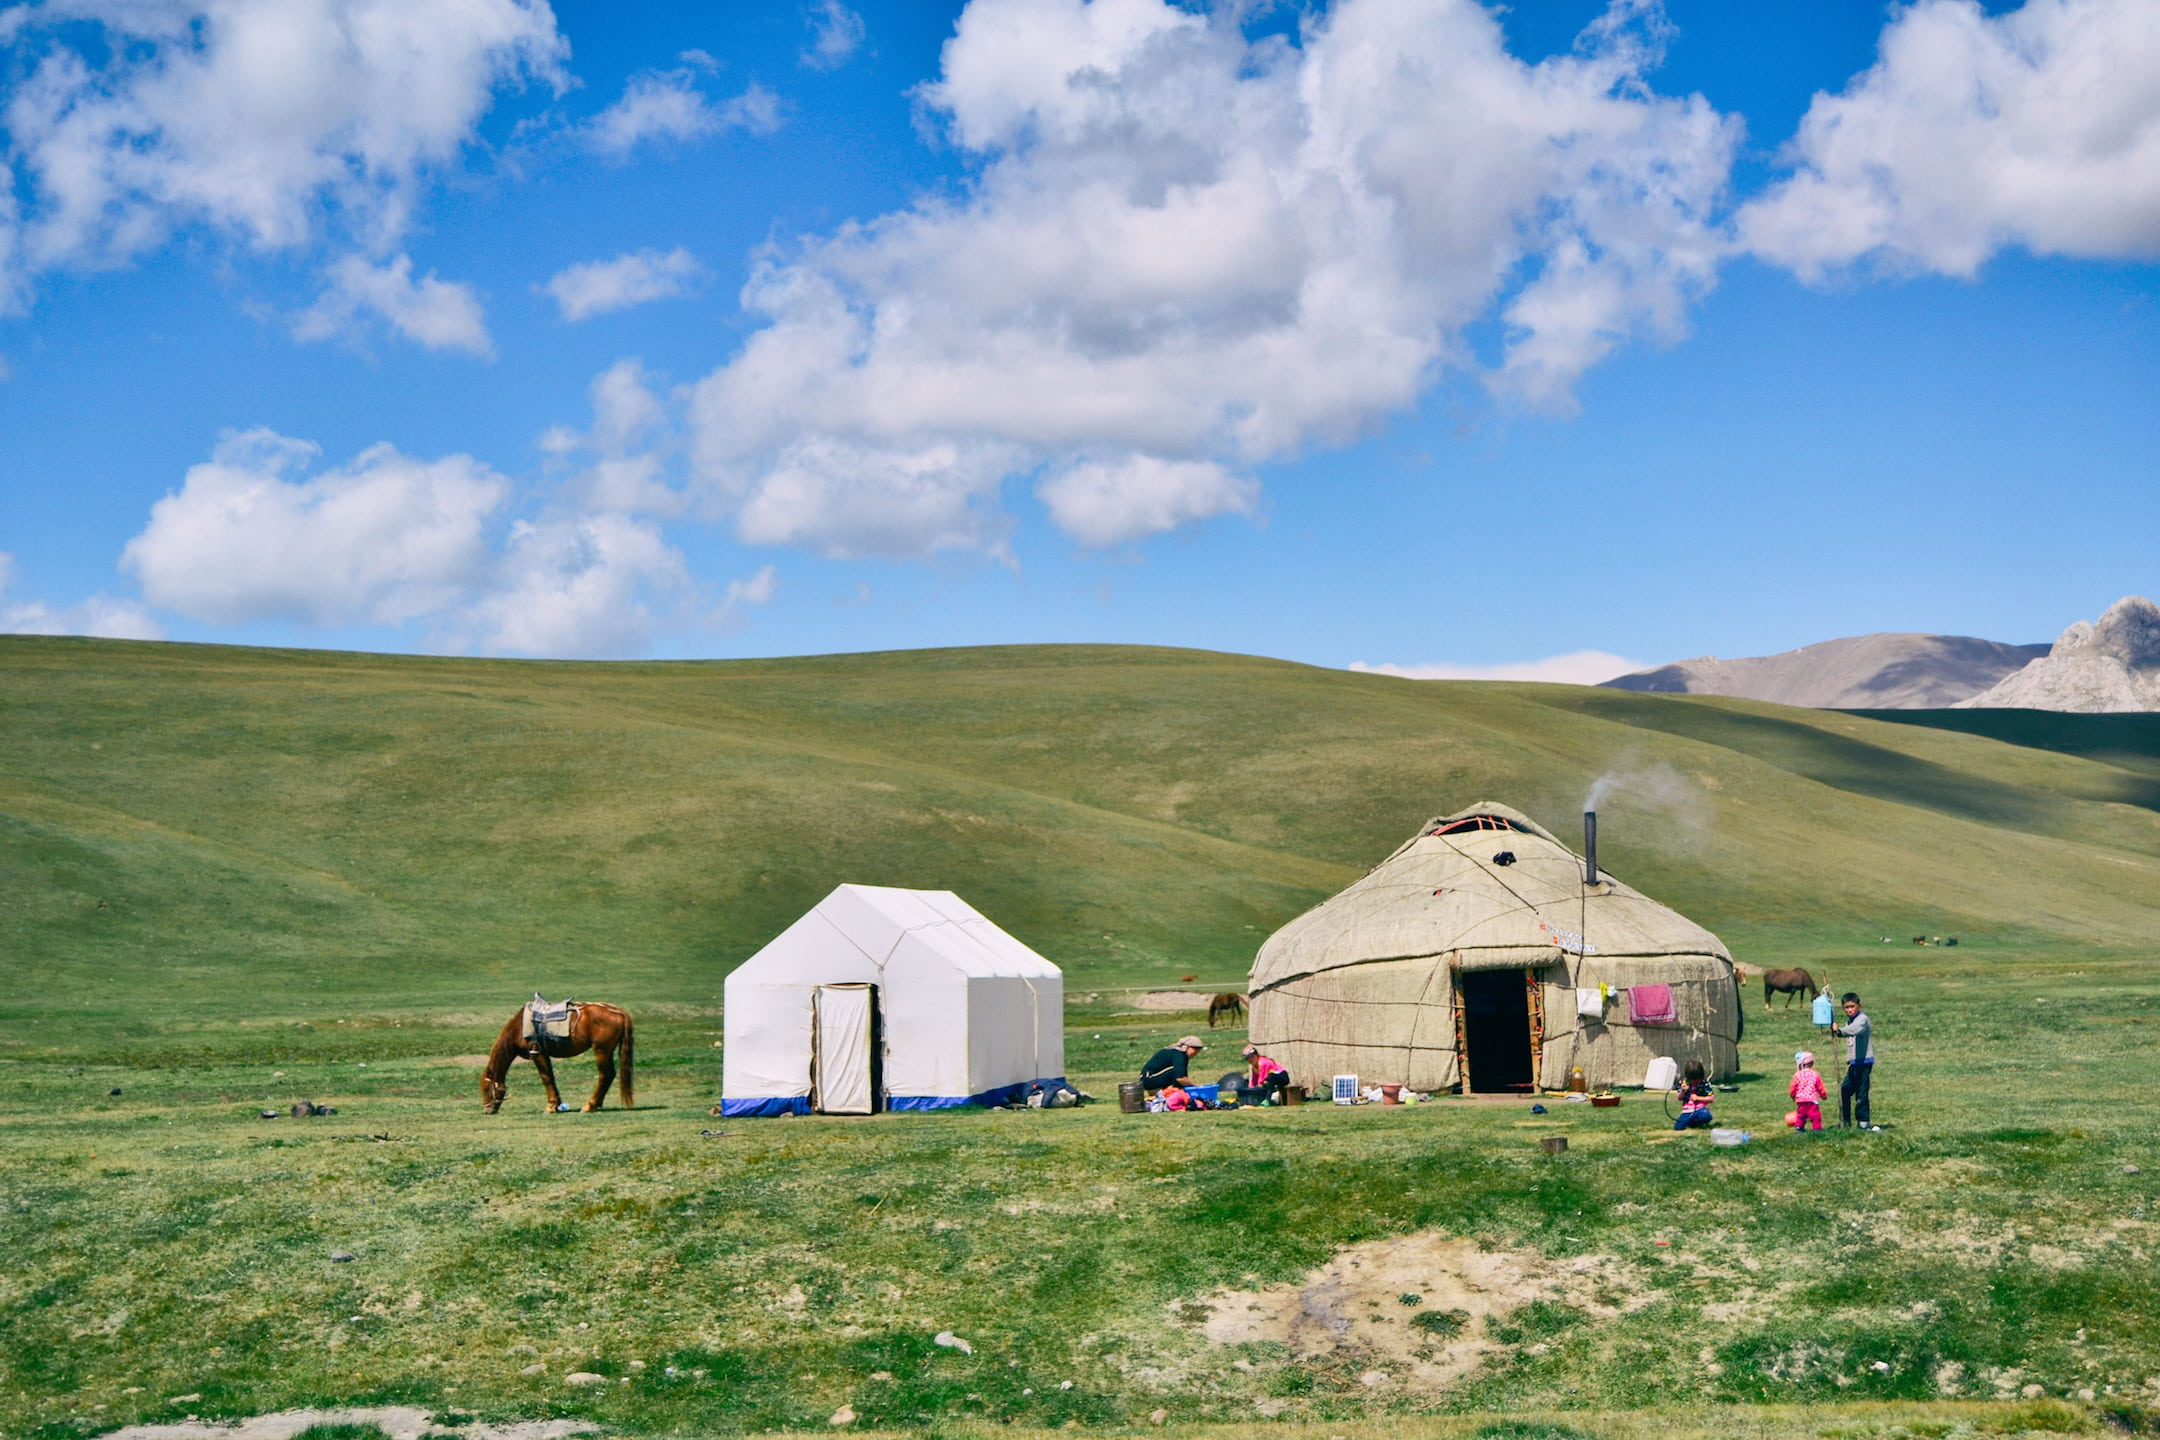 Mongolia classic tour: A Land of Mystic Serene Steppes